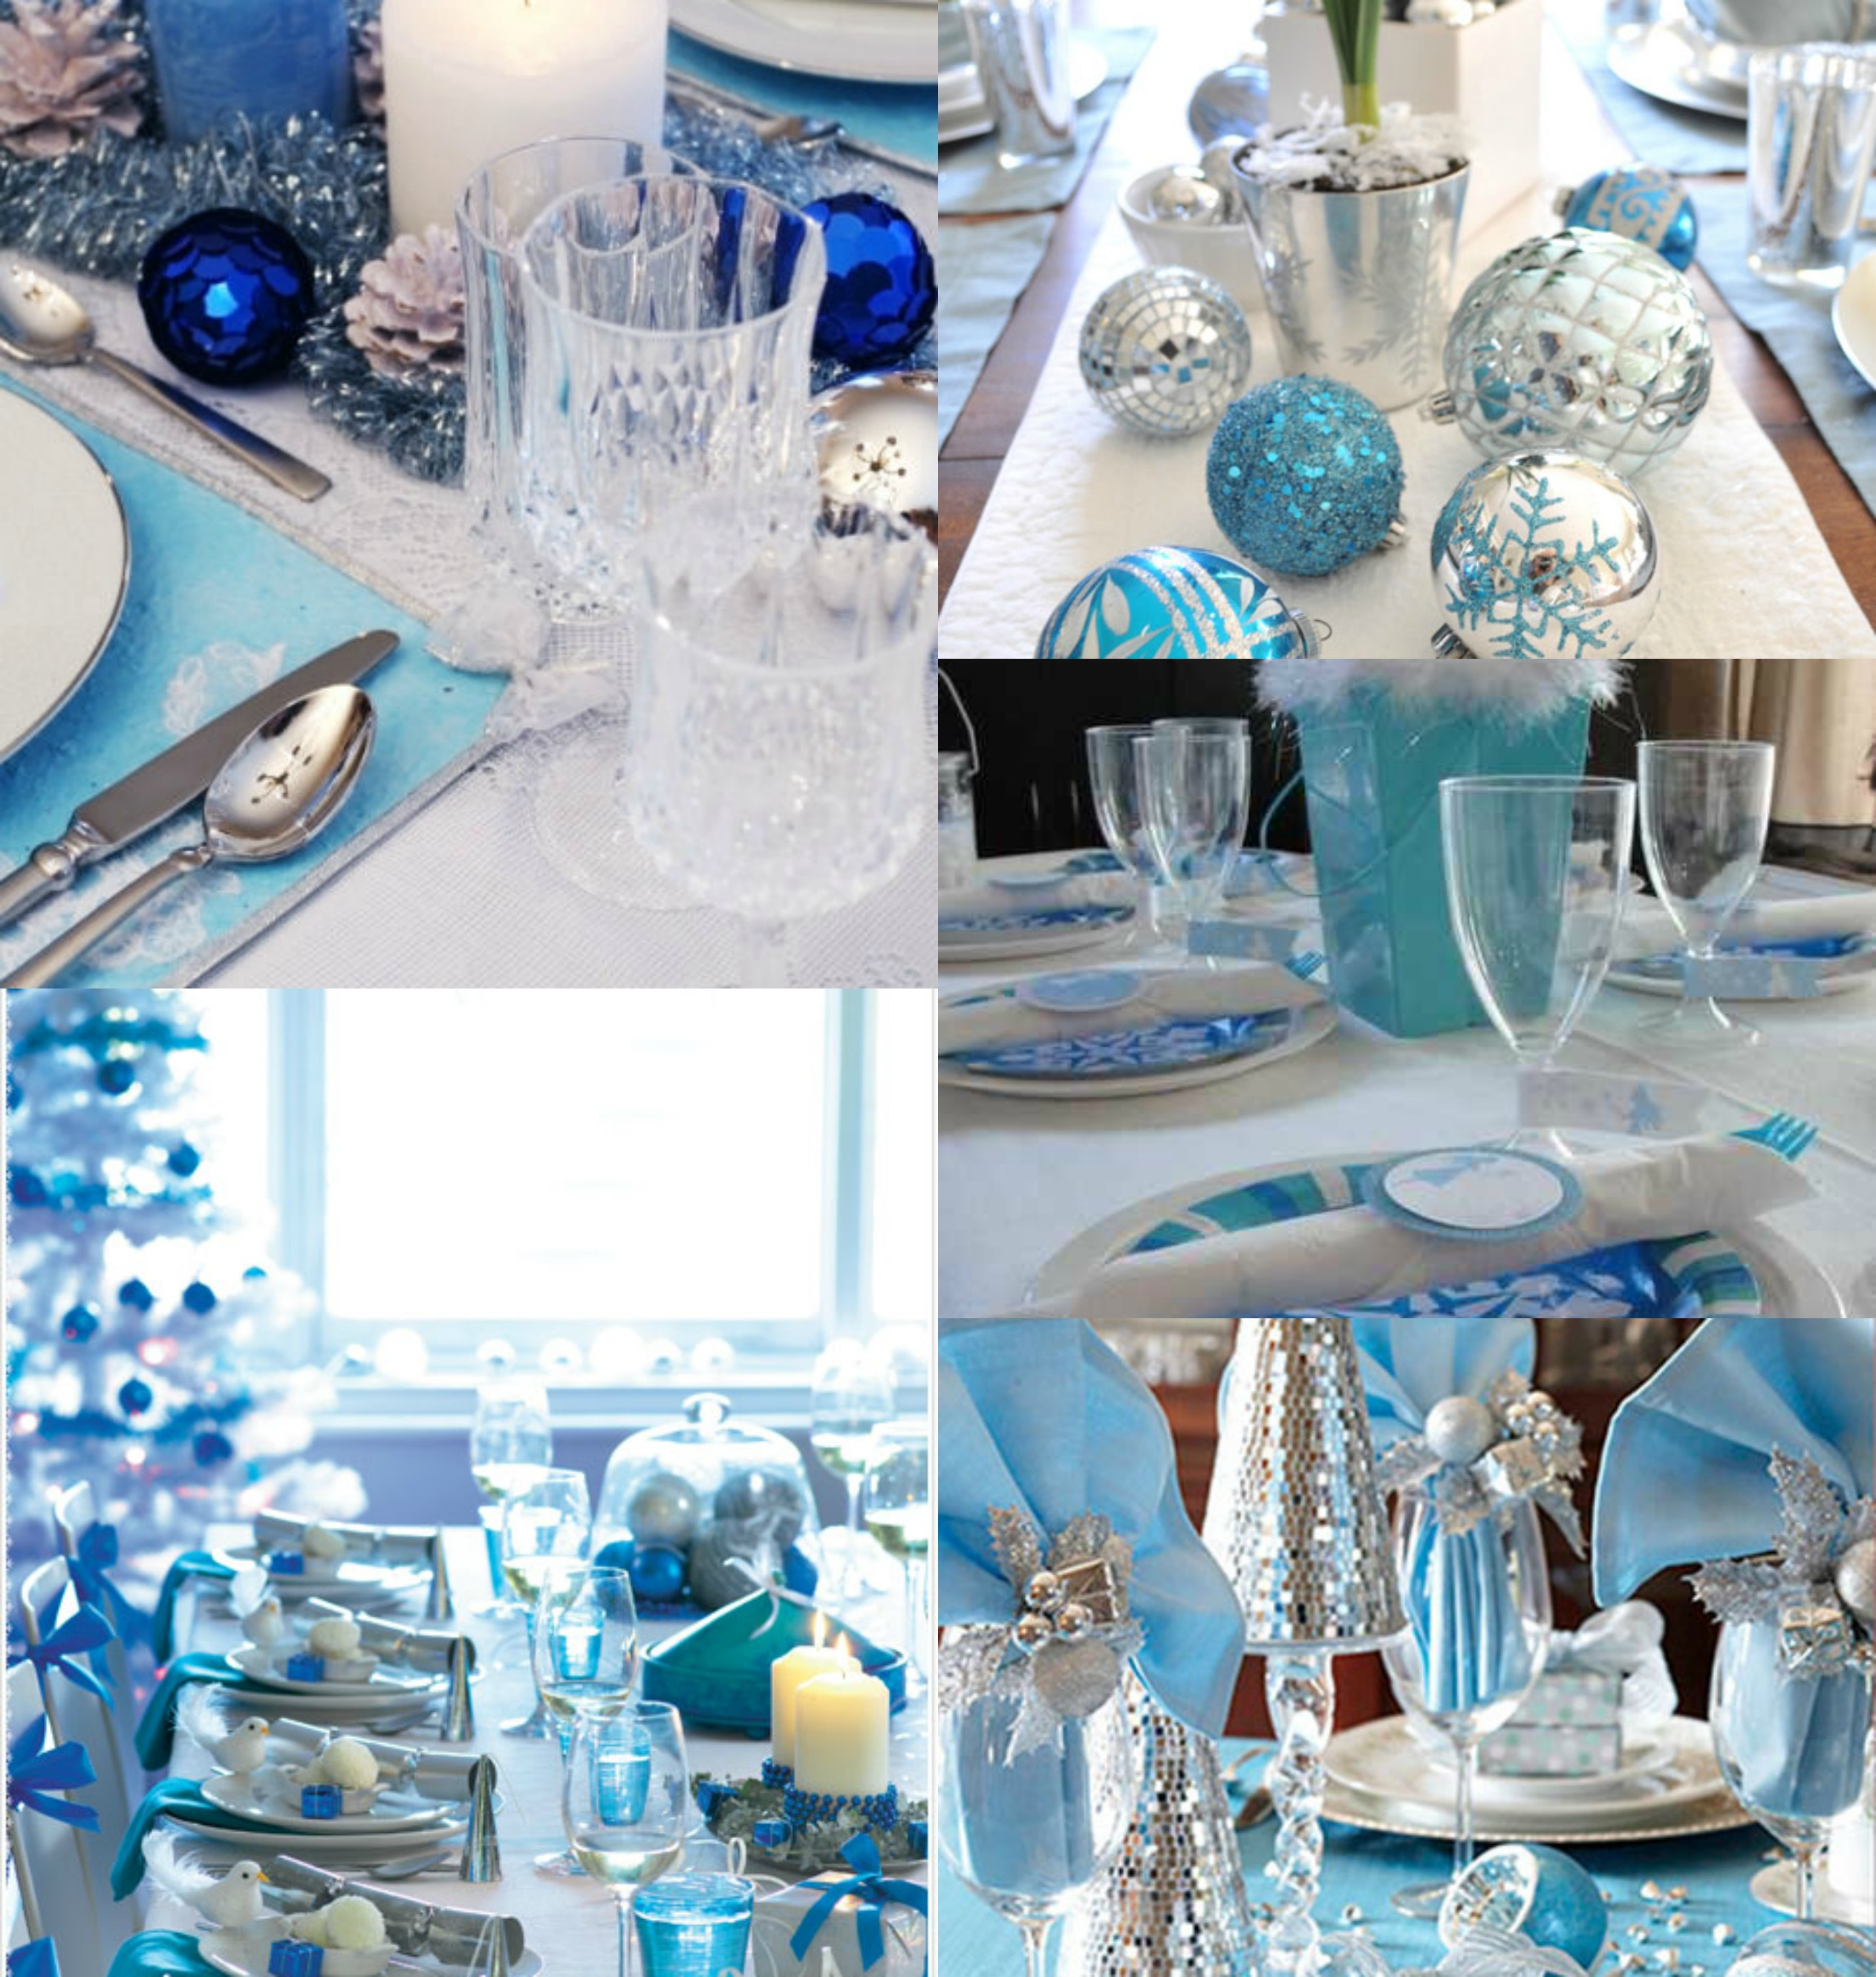 #2877A3 Index Of /wp Content/uploads/2014/09 6567 décoration table de noel neige 2526x2662 px @ aertt.com